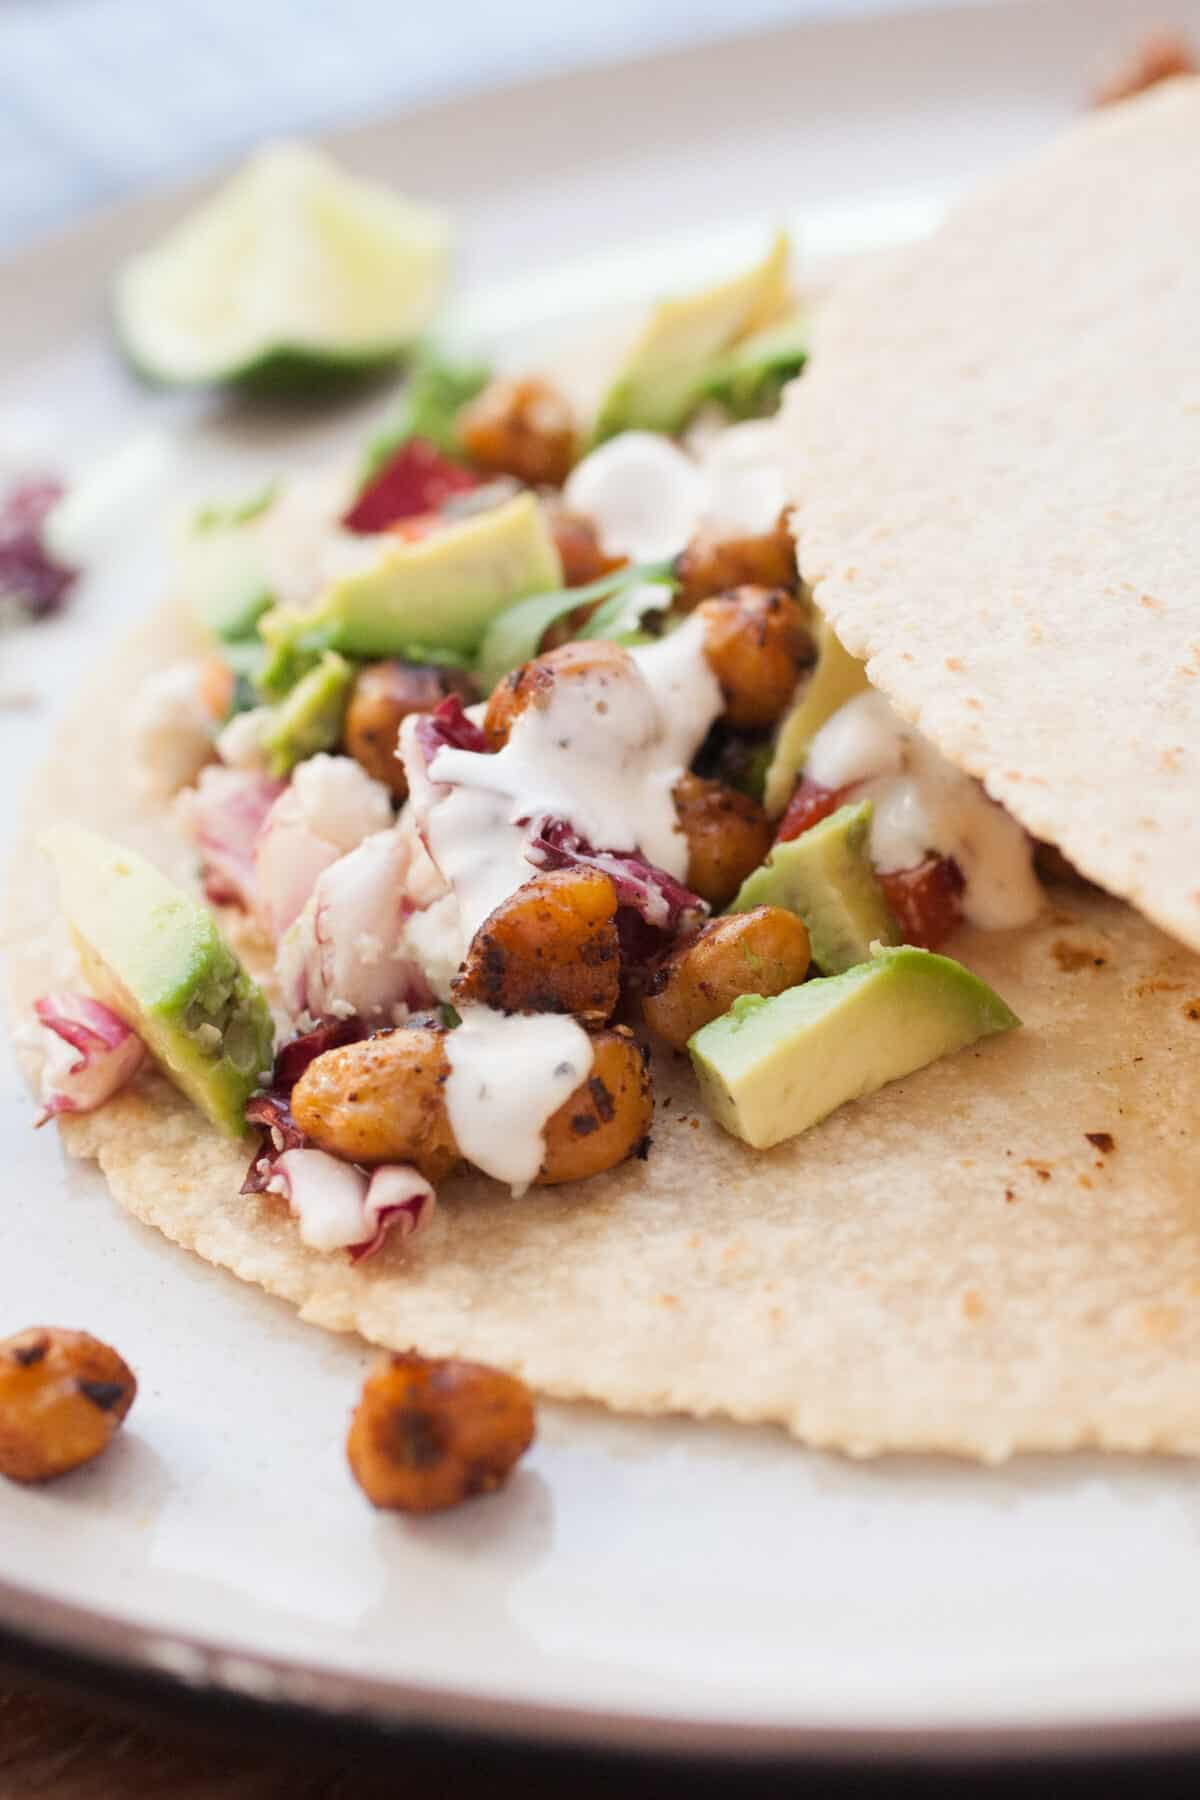 Crispy Chickpea Tacos: These fast and delicious vegetarian tacos are plenty filling and have great toppings: a quick slaw and a creamy avocado sauce. YUM! | macheesmo.com